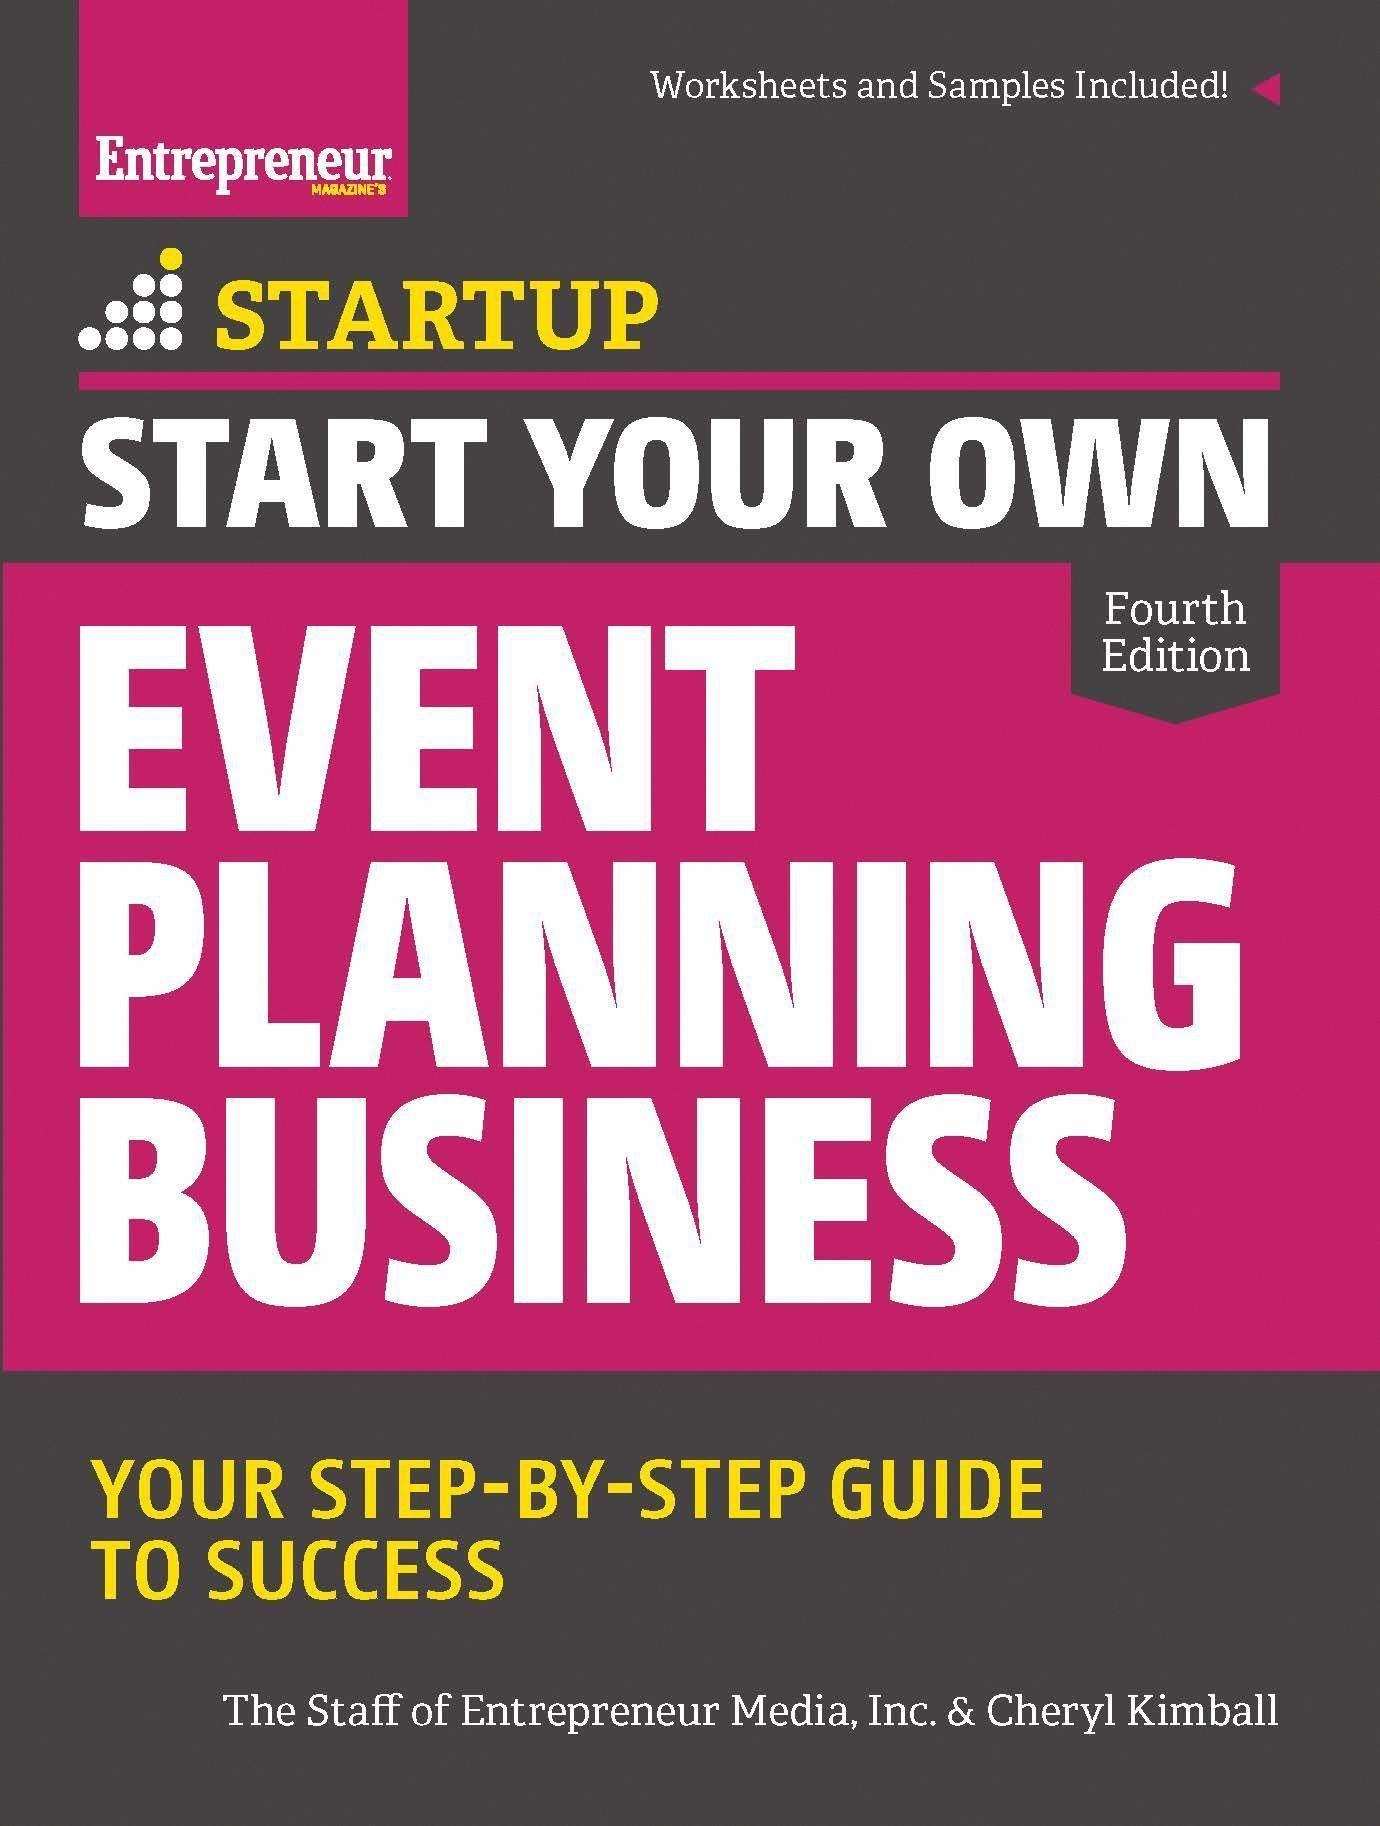 START YOUR OWN EVENT PLANNING BUSINESS AND CELEBRATE ALL